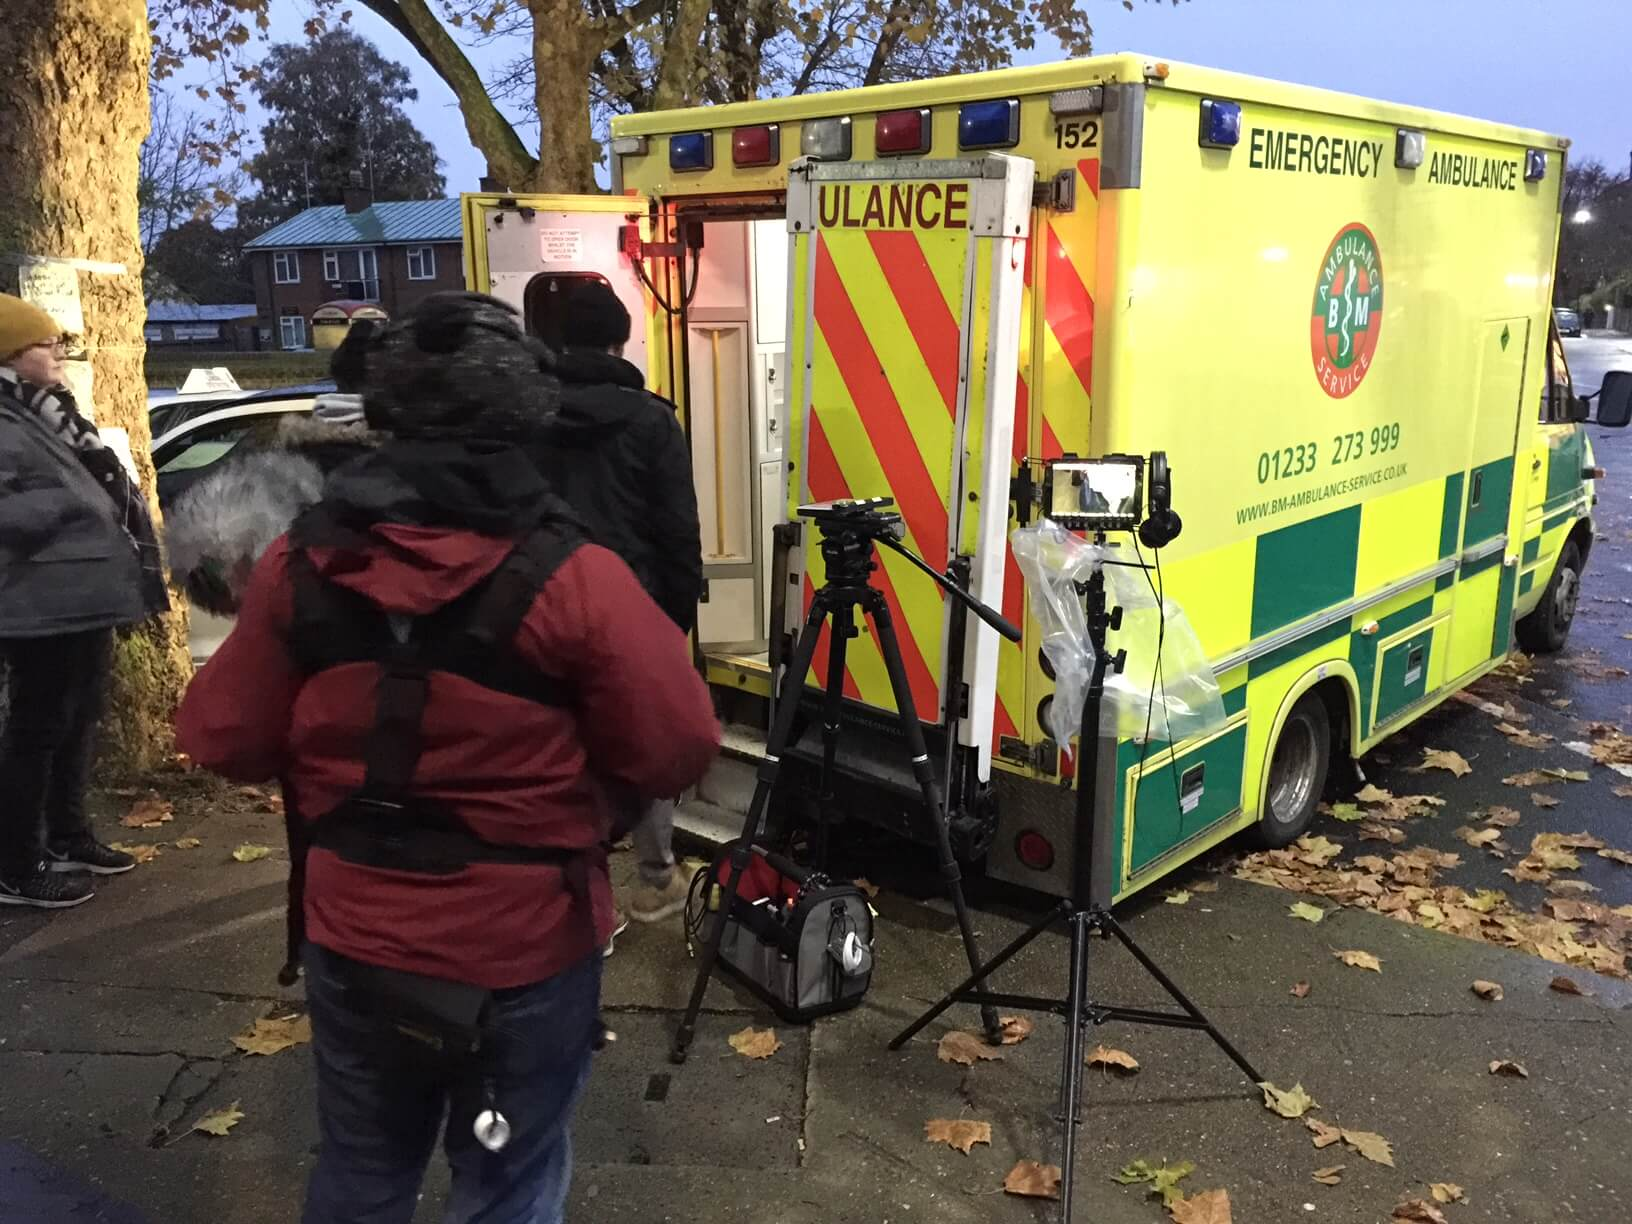 Filming on Location in London